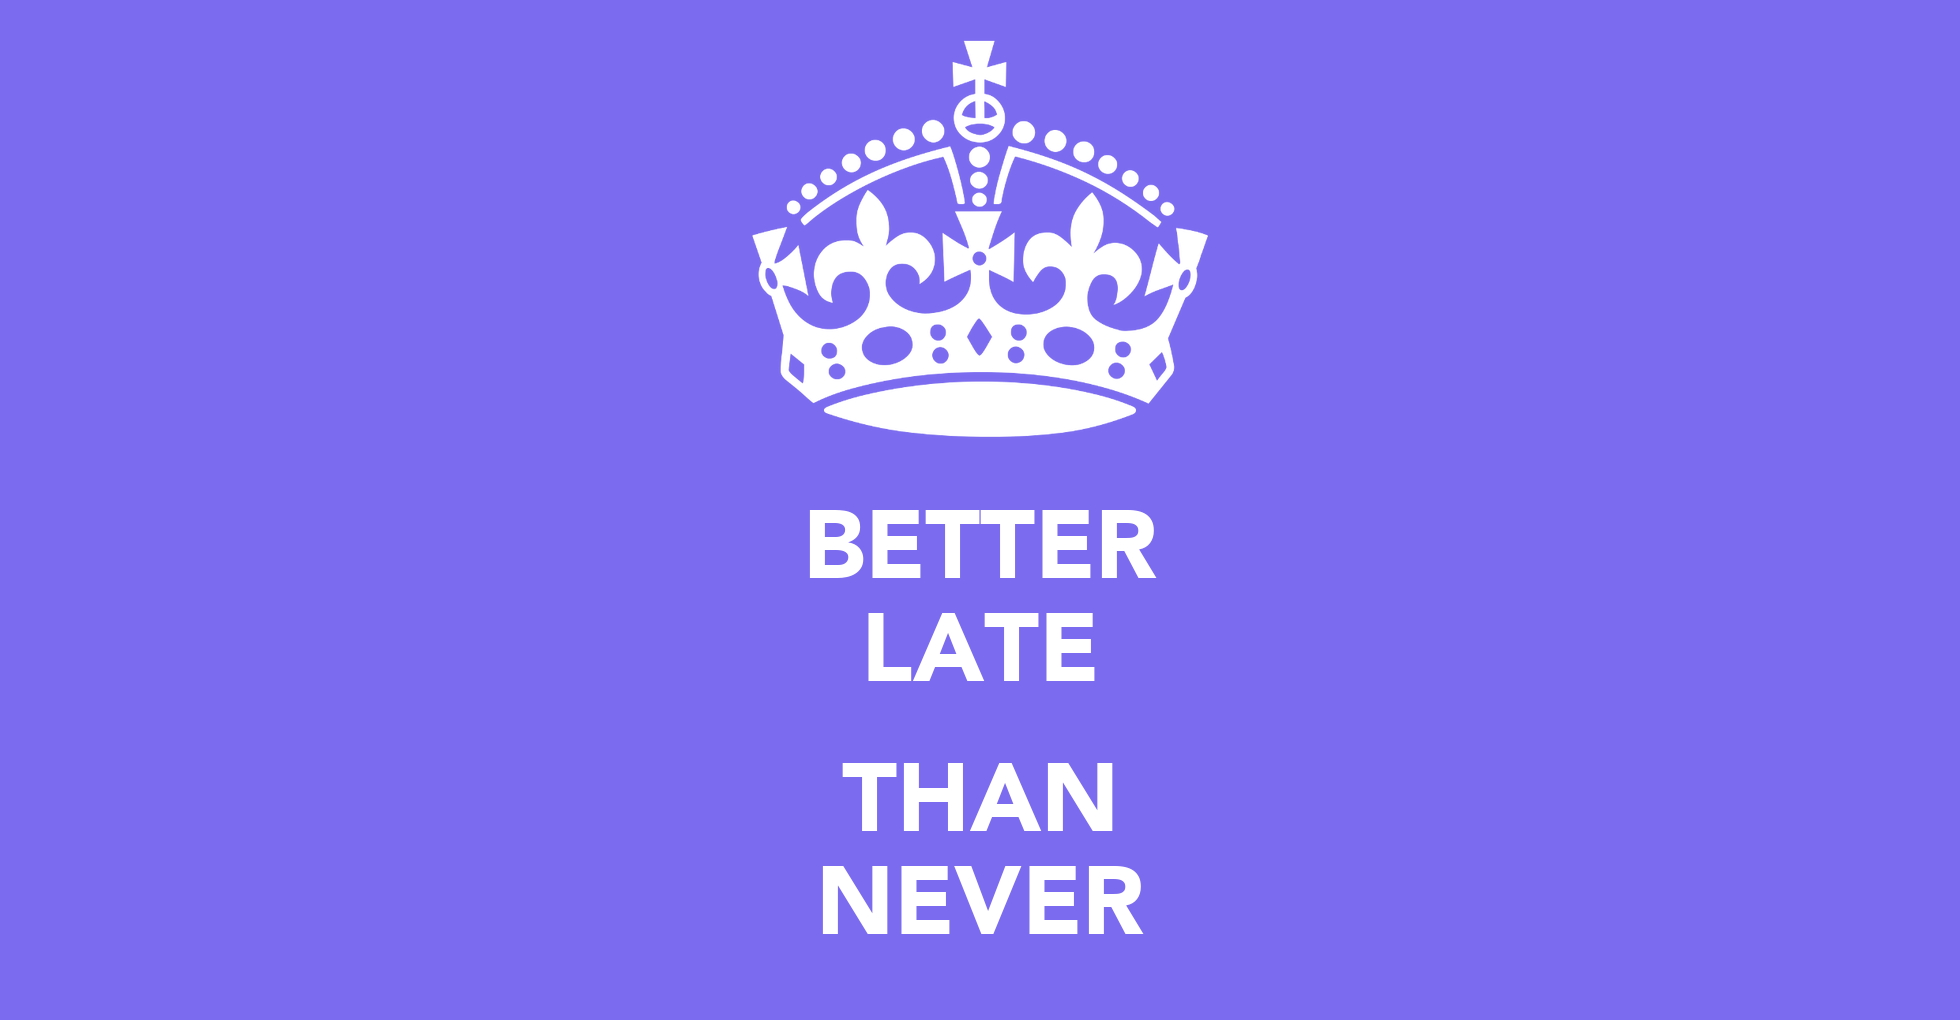 never Better late than